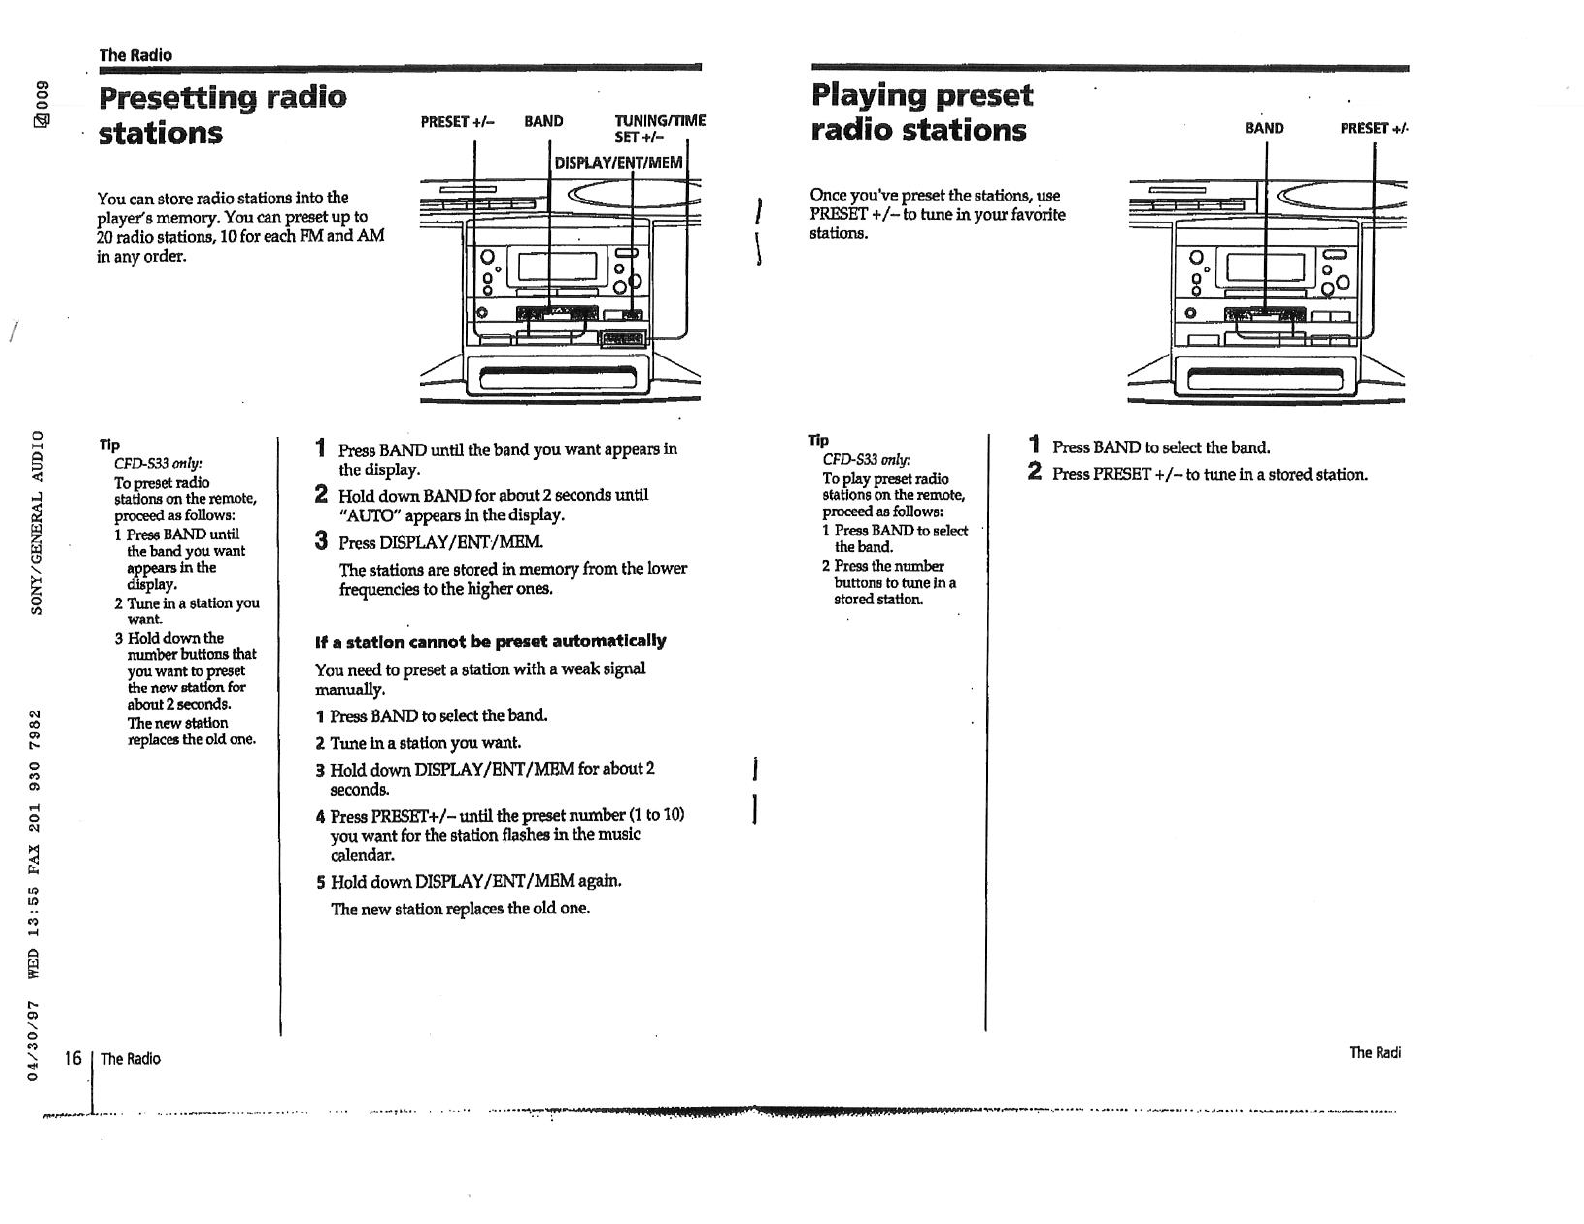 Sony Cdx Sw200 Wiring Diagram Diagrams S2000 Harness Portable Stereo System User Manual Open Source U2022 Colors